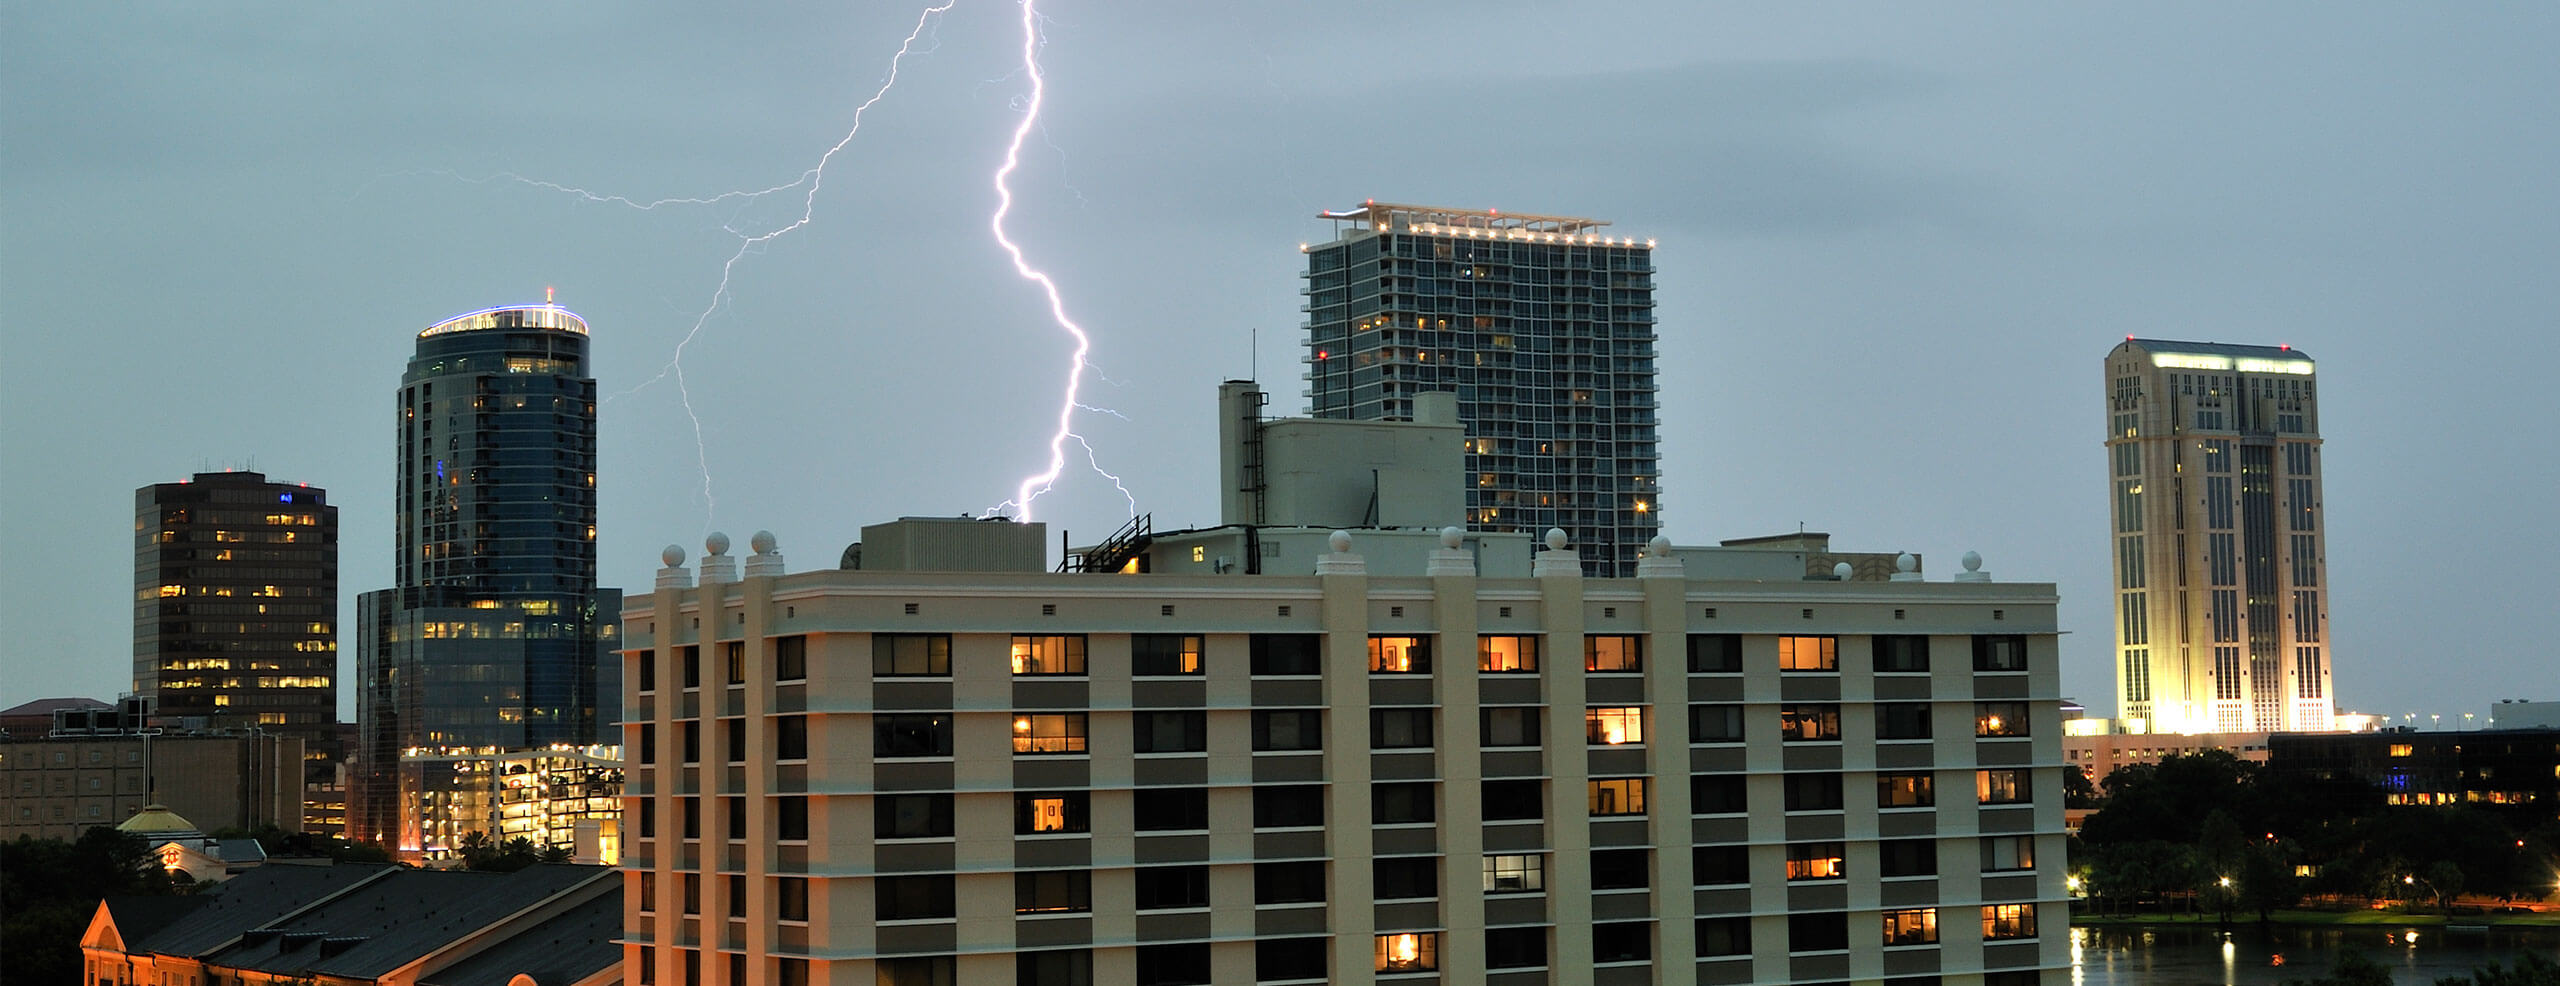 Surge Protection, lightning protection